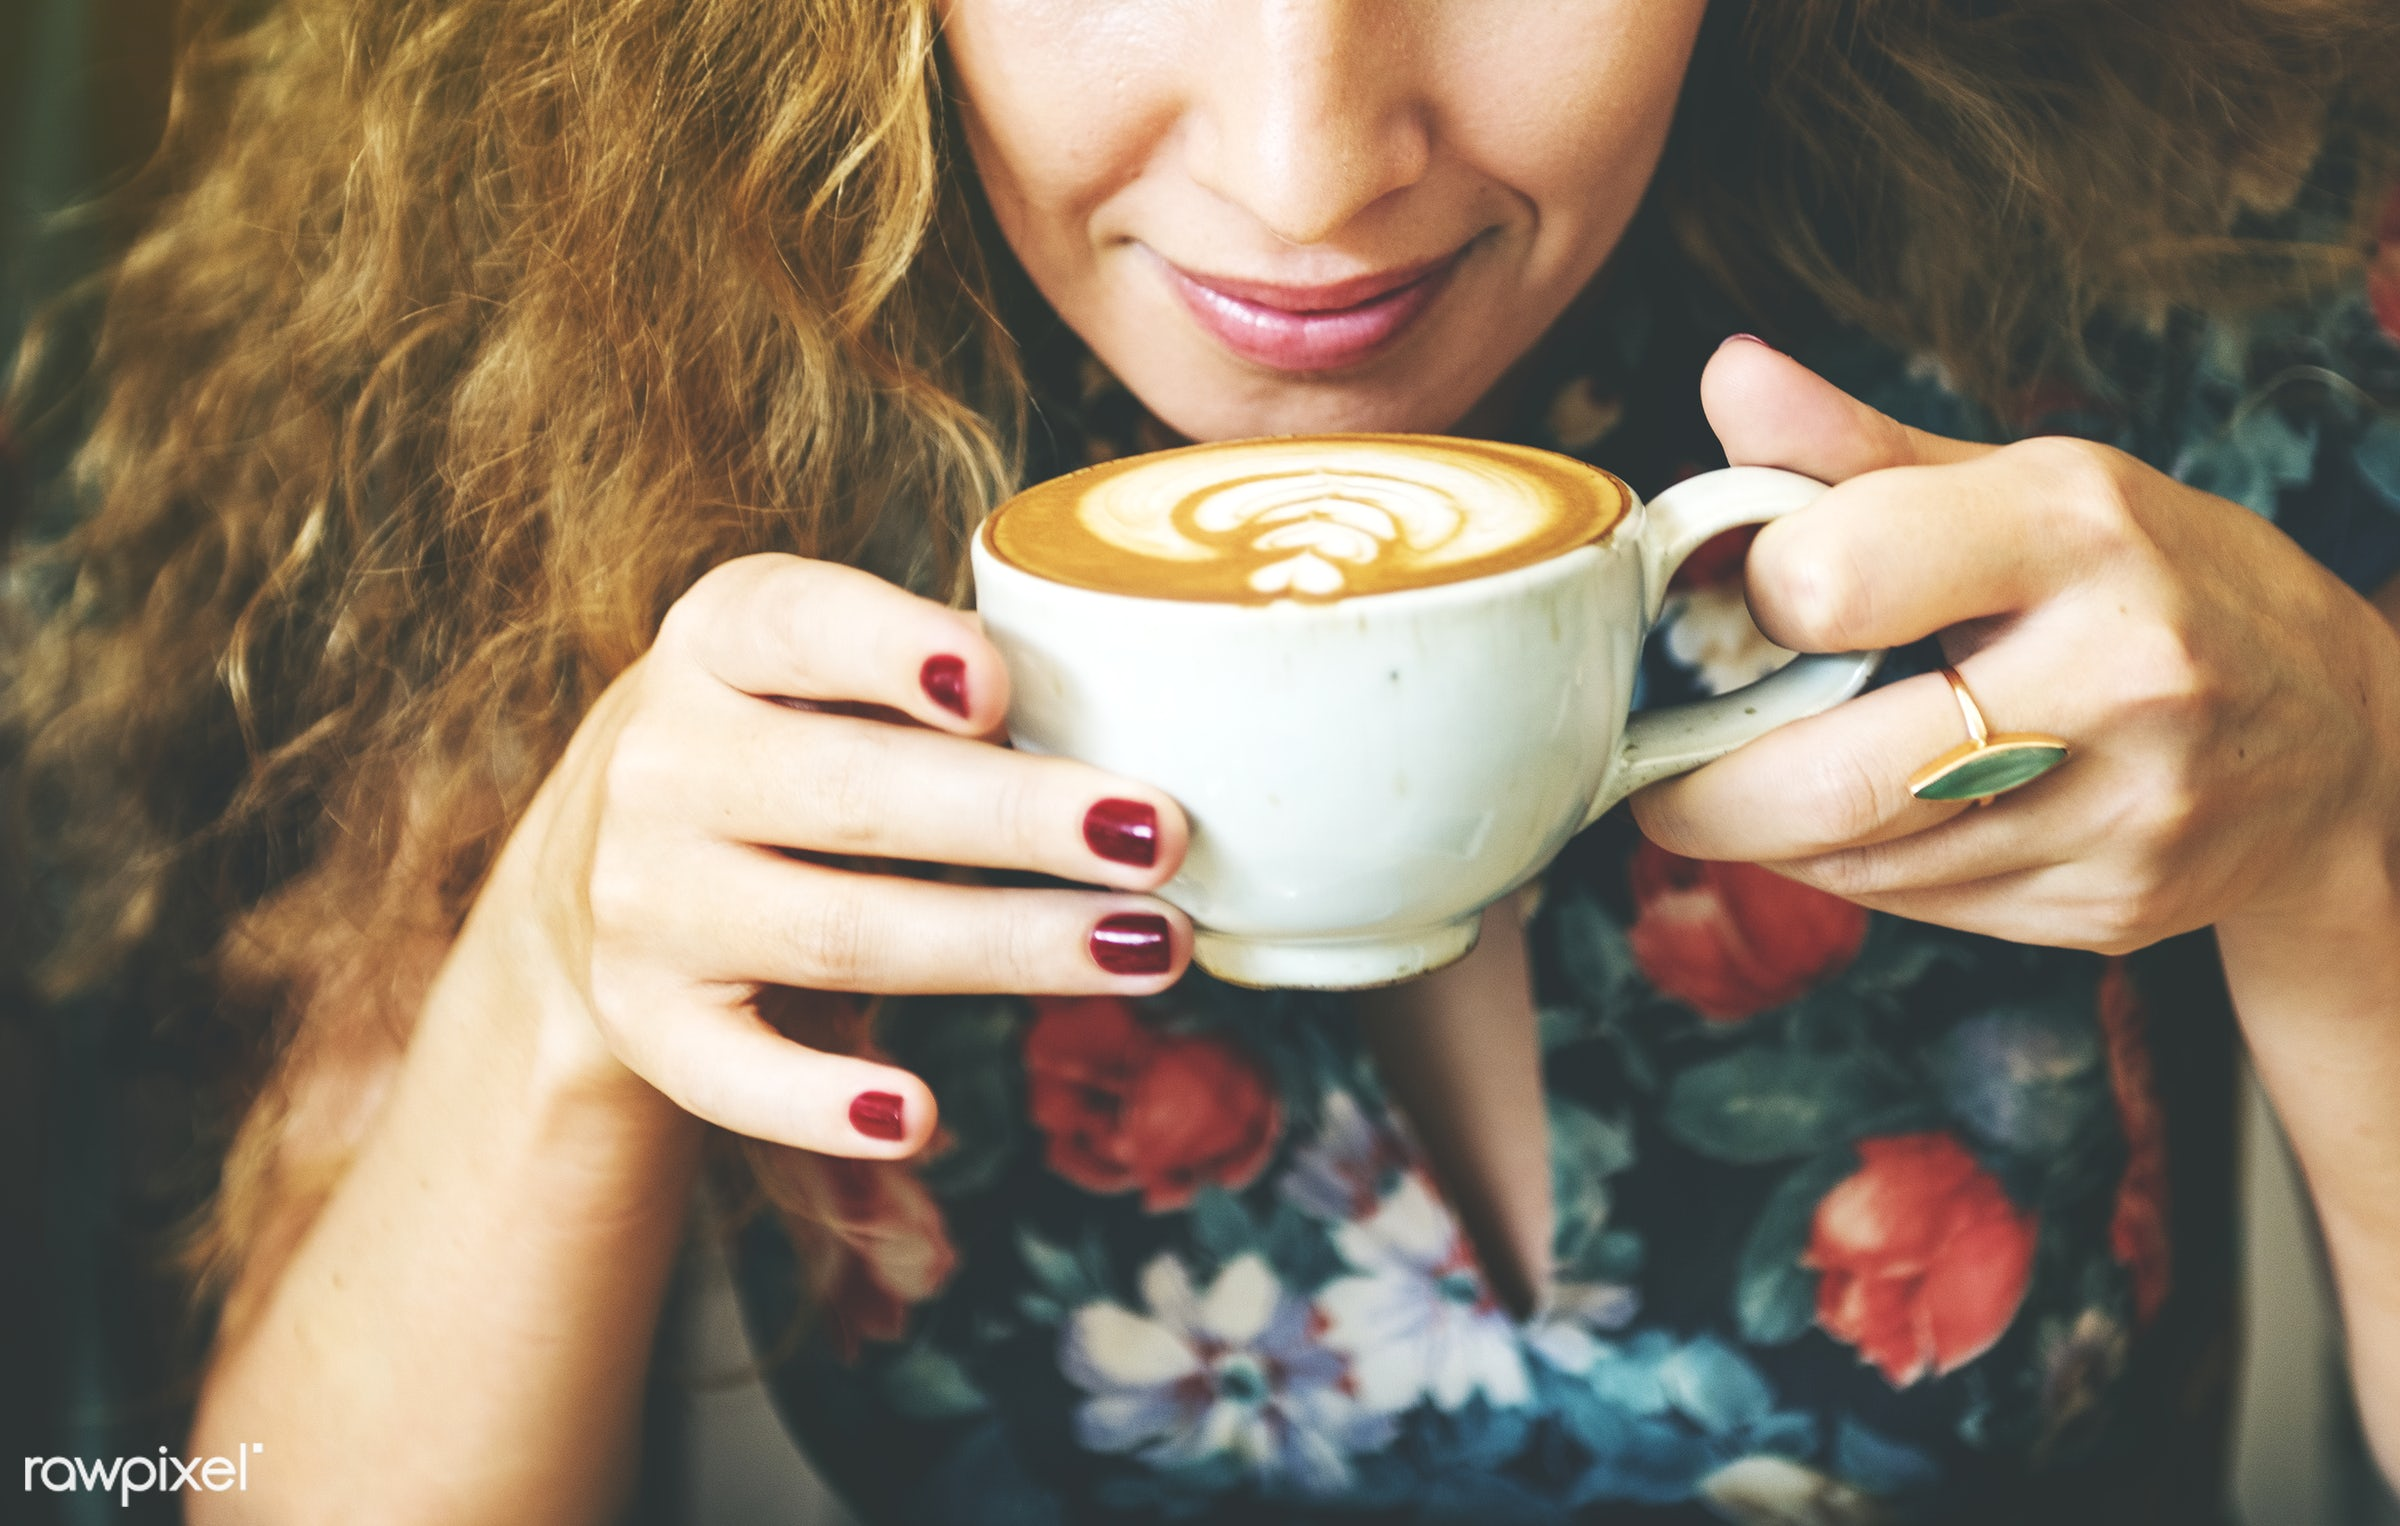 espresso, aroma, art, beautiful, beauty, beverage, breakfast, brewed, brown, brunette, cafe, cafe shop, cappuccino, casual,...